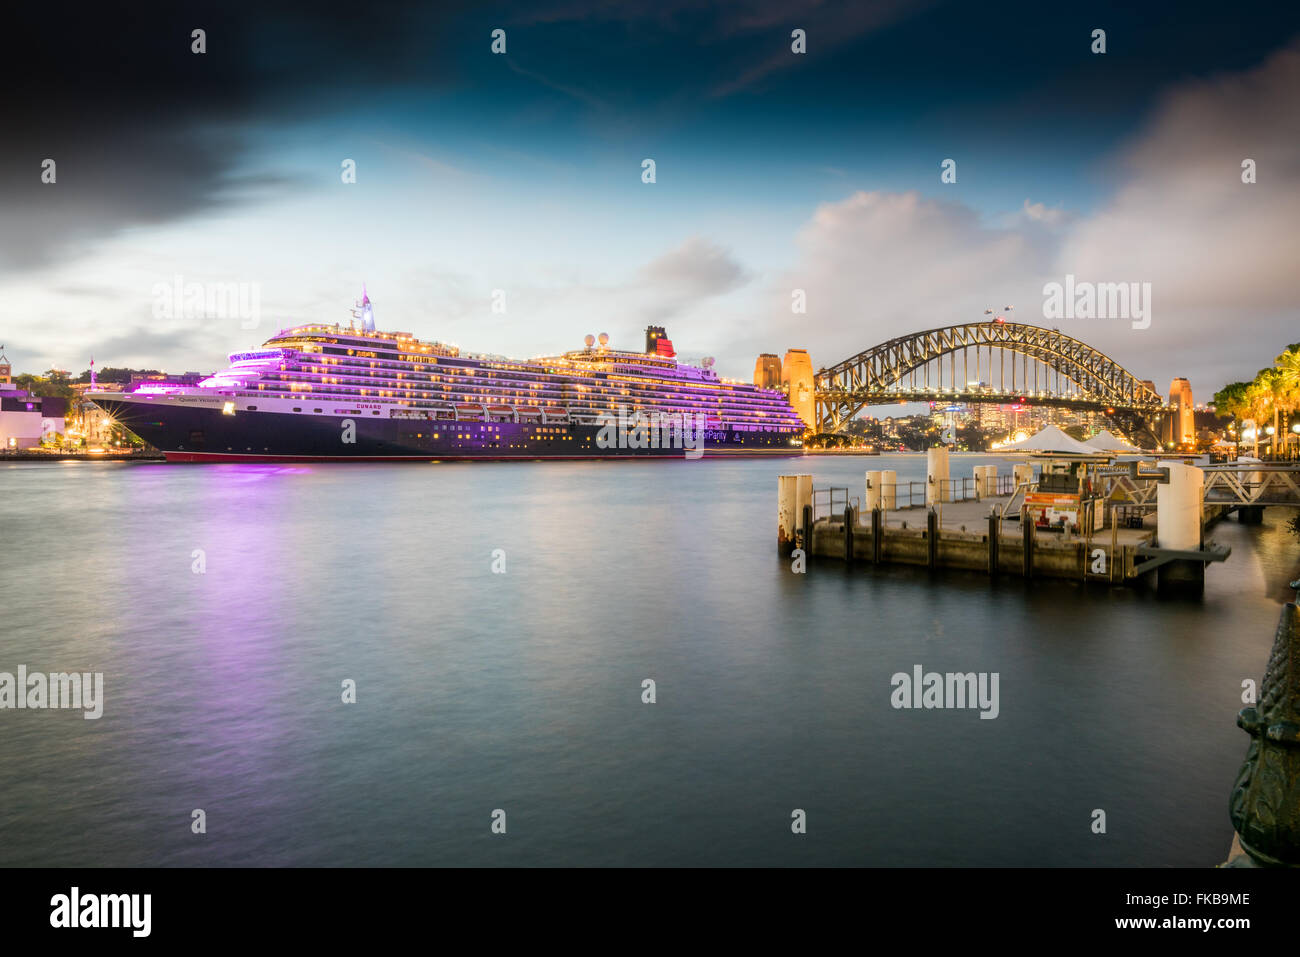 Pledge for Parity - Cunard marking International Women's Day in Sydney - Stock Image